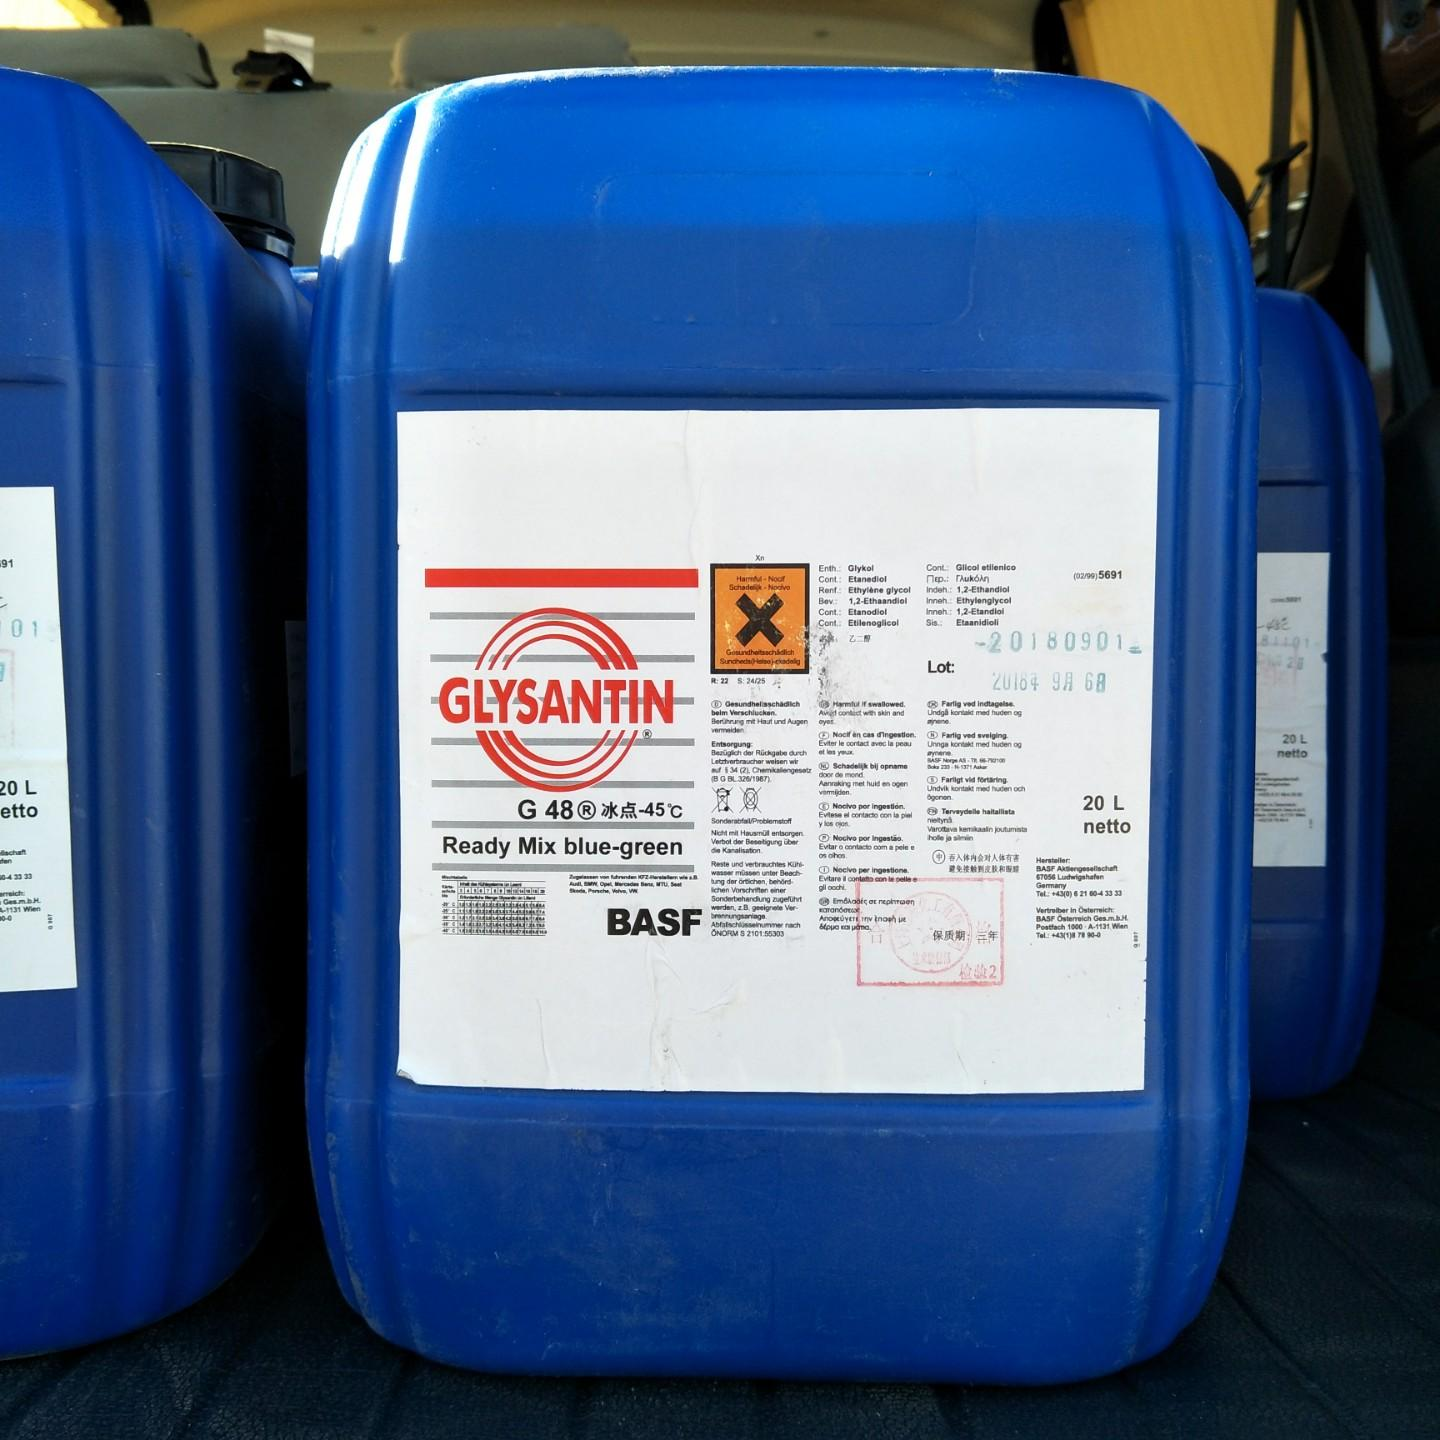 GLYSANTIN G48 Ready Mix blue-green